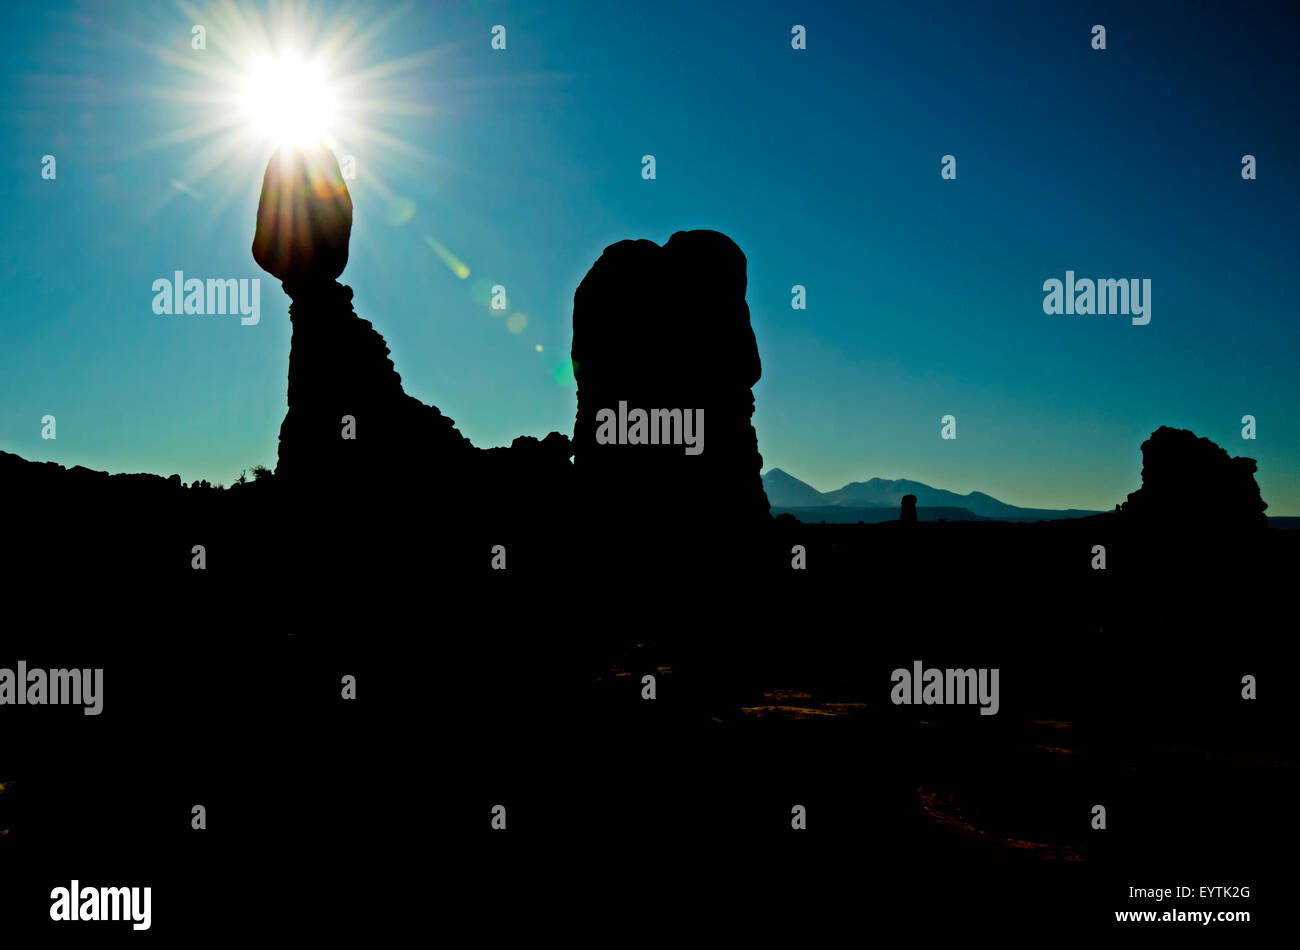 A peaceful artistic silhouetted landscape with the famous 'Balancing Rock' at Arches National Park, Moab, - Stock Image